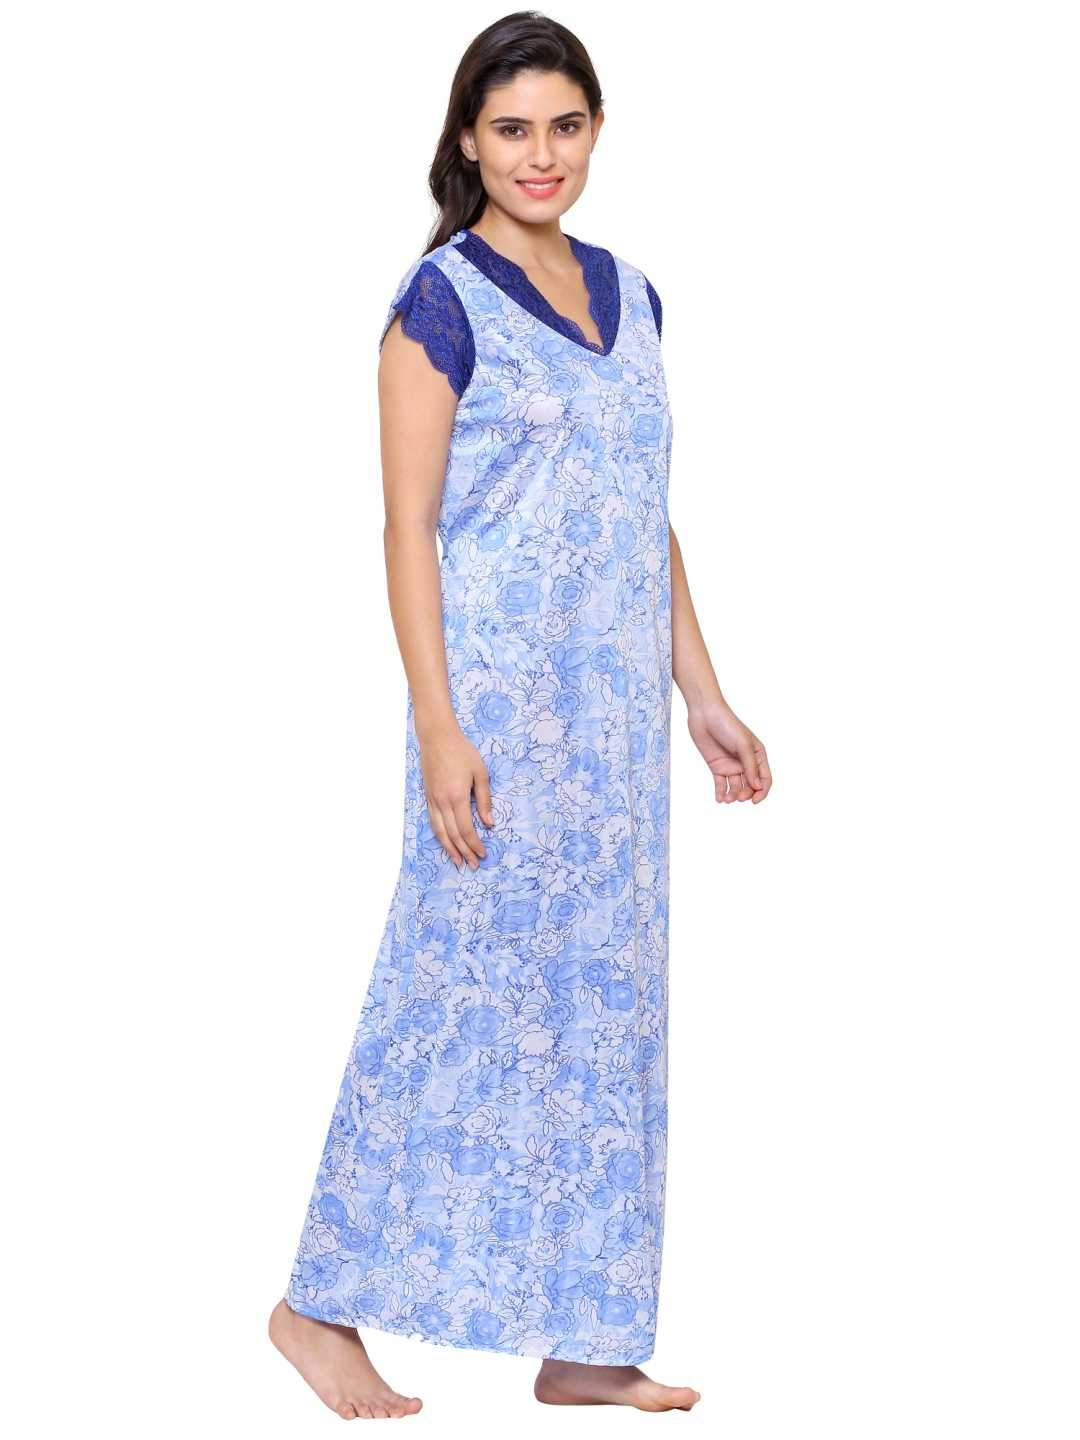 Klamotten Women's Printed Long Nightdress 50S26